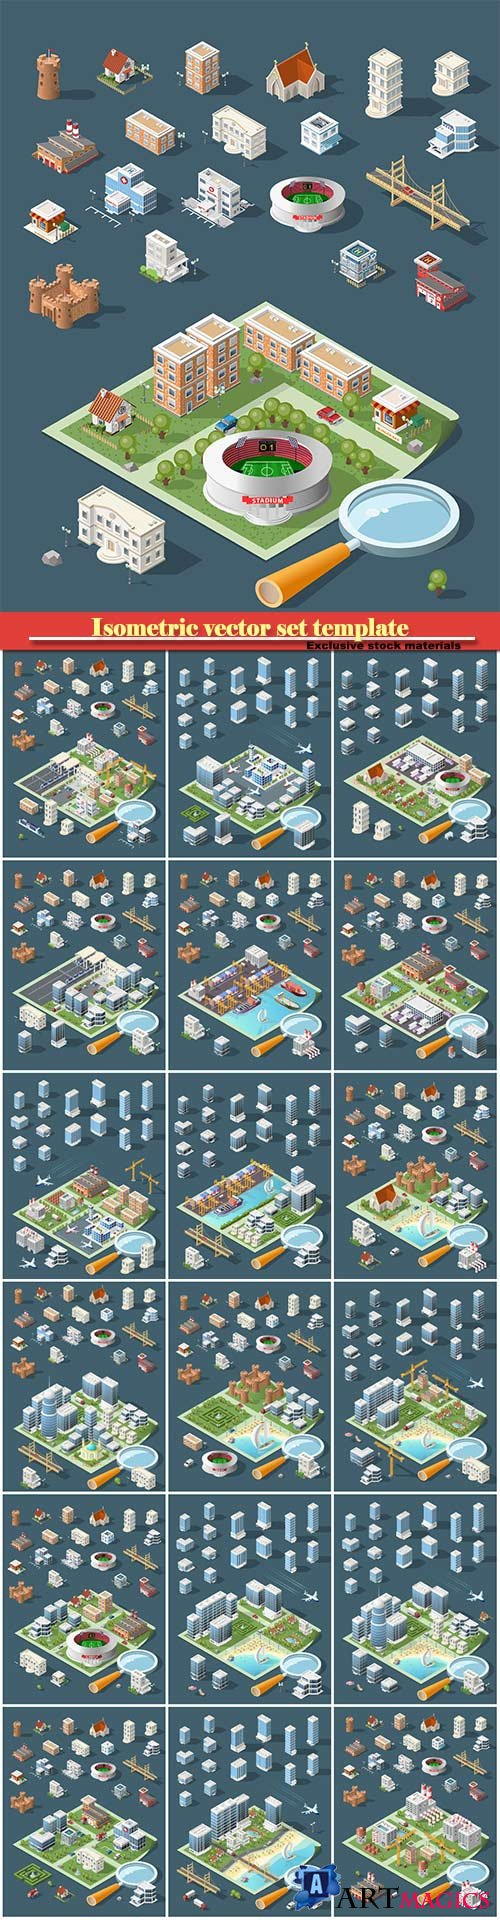 Isometric vector set template